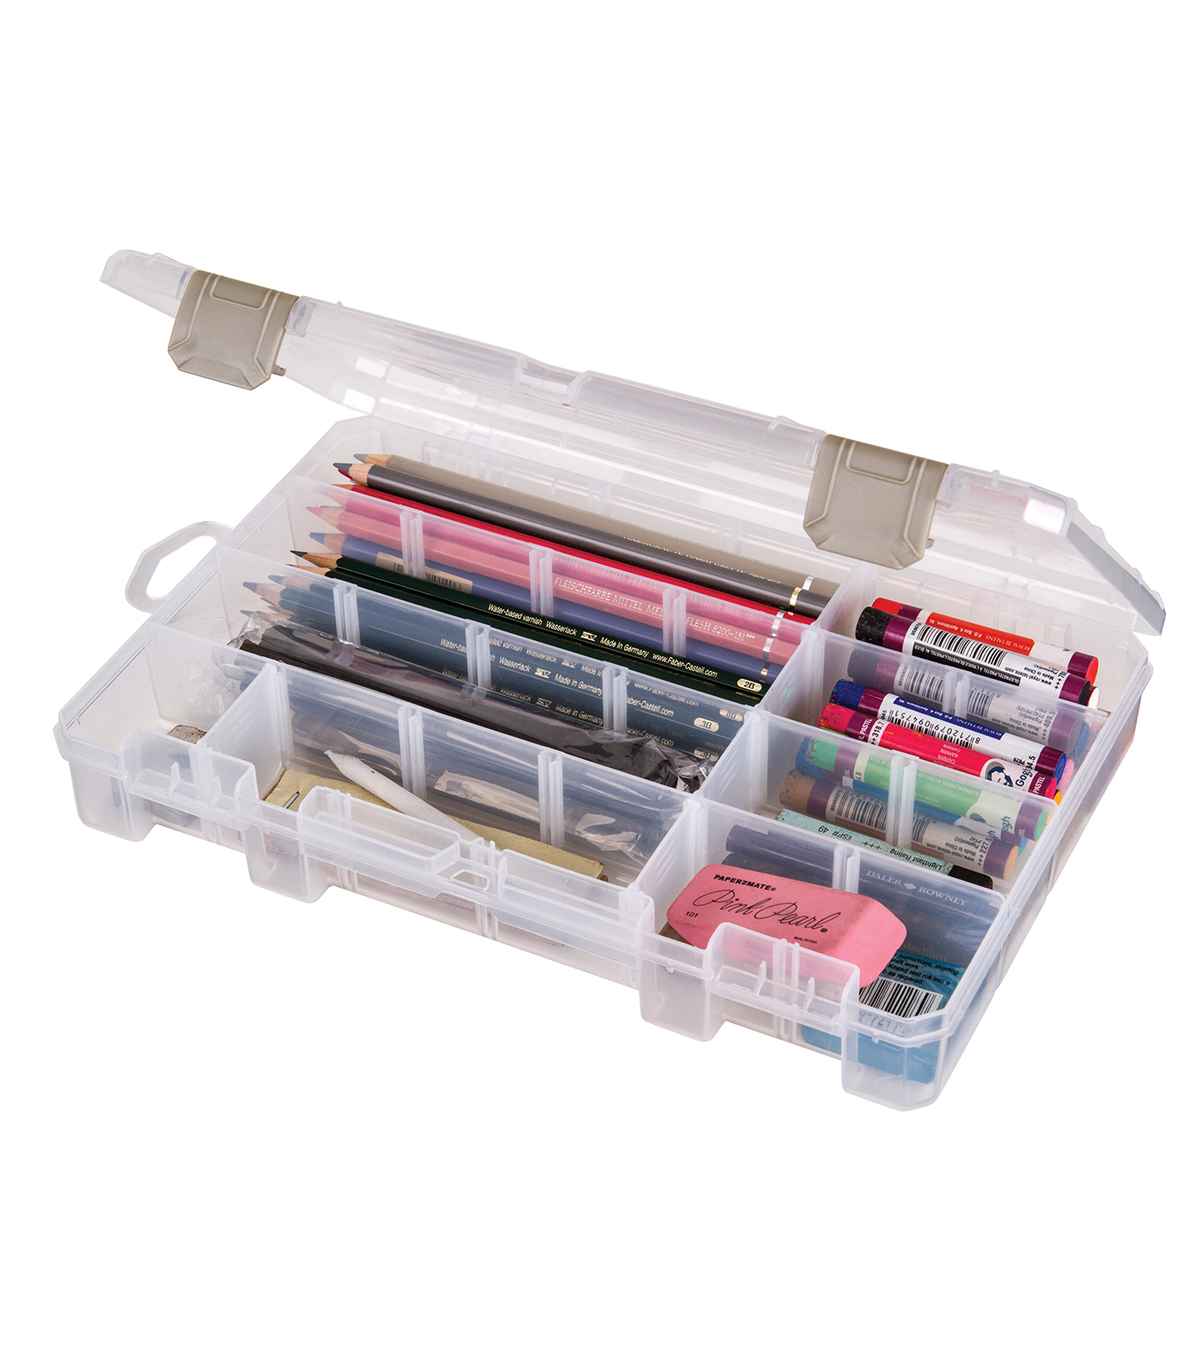 ArtBin Solutions Box 6-12 Compartments-Translucent